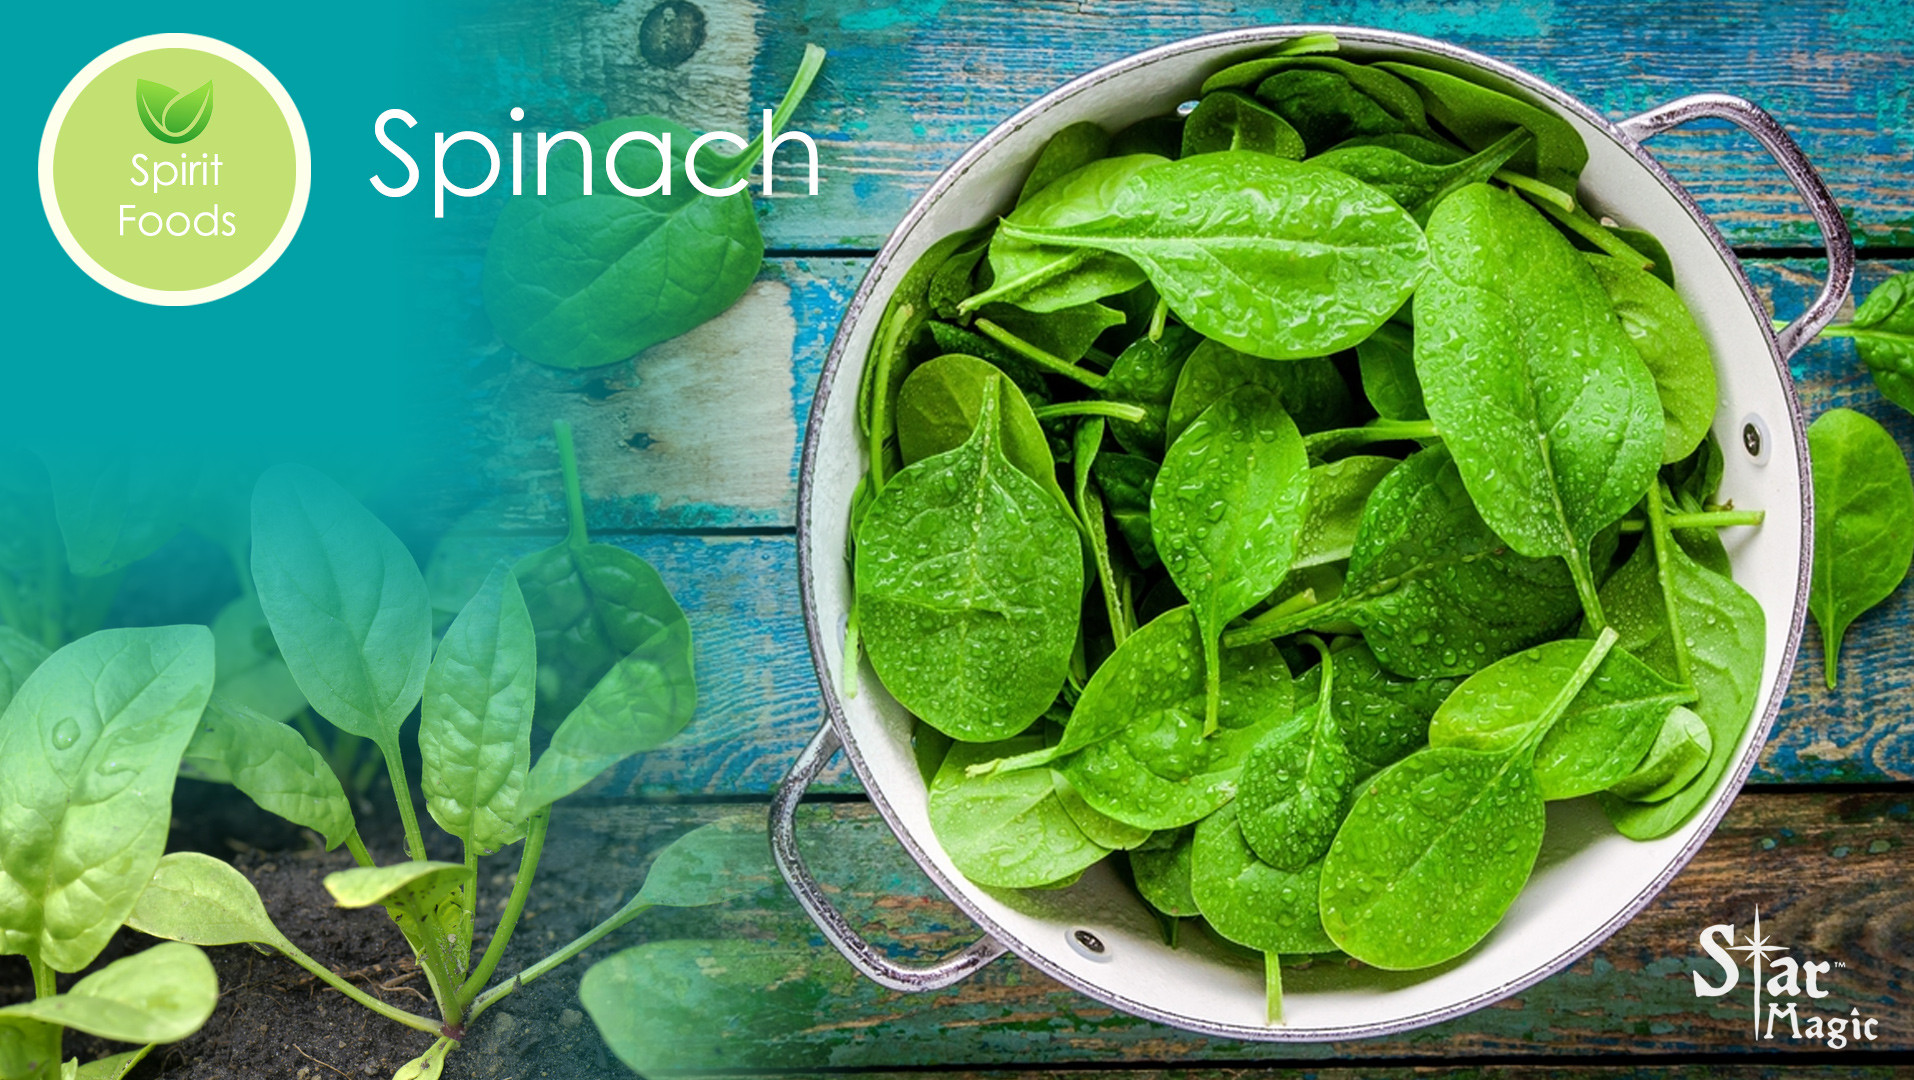 Spirit Food – Spinach